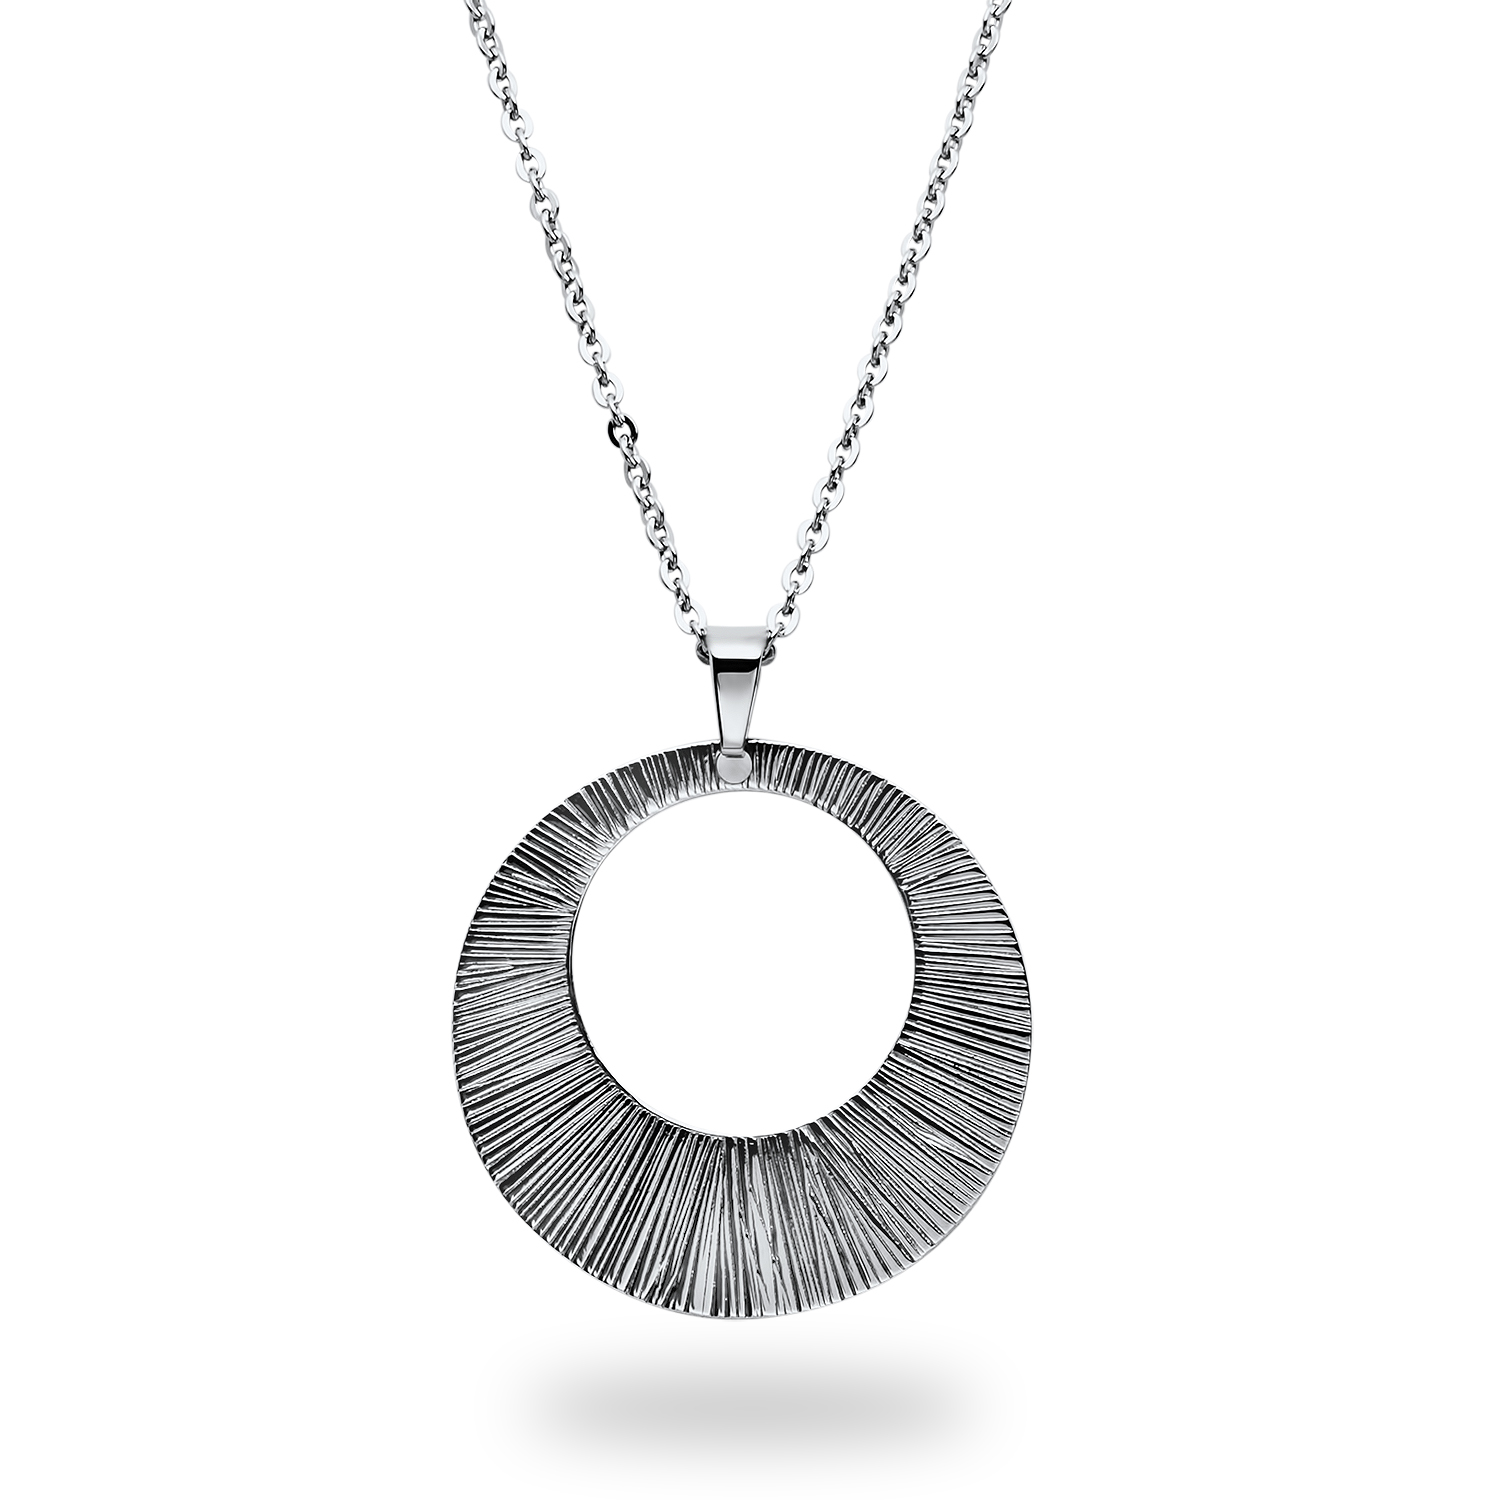 Stainless Steel Textured Pendant Necklace